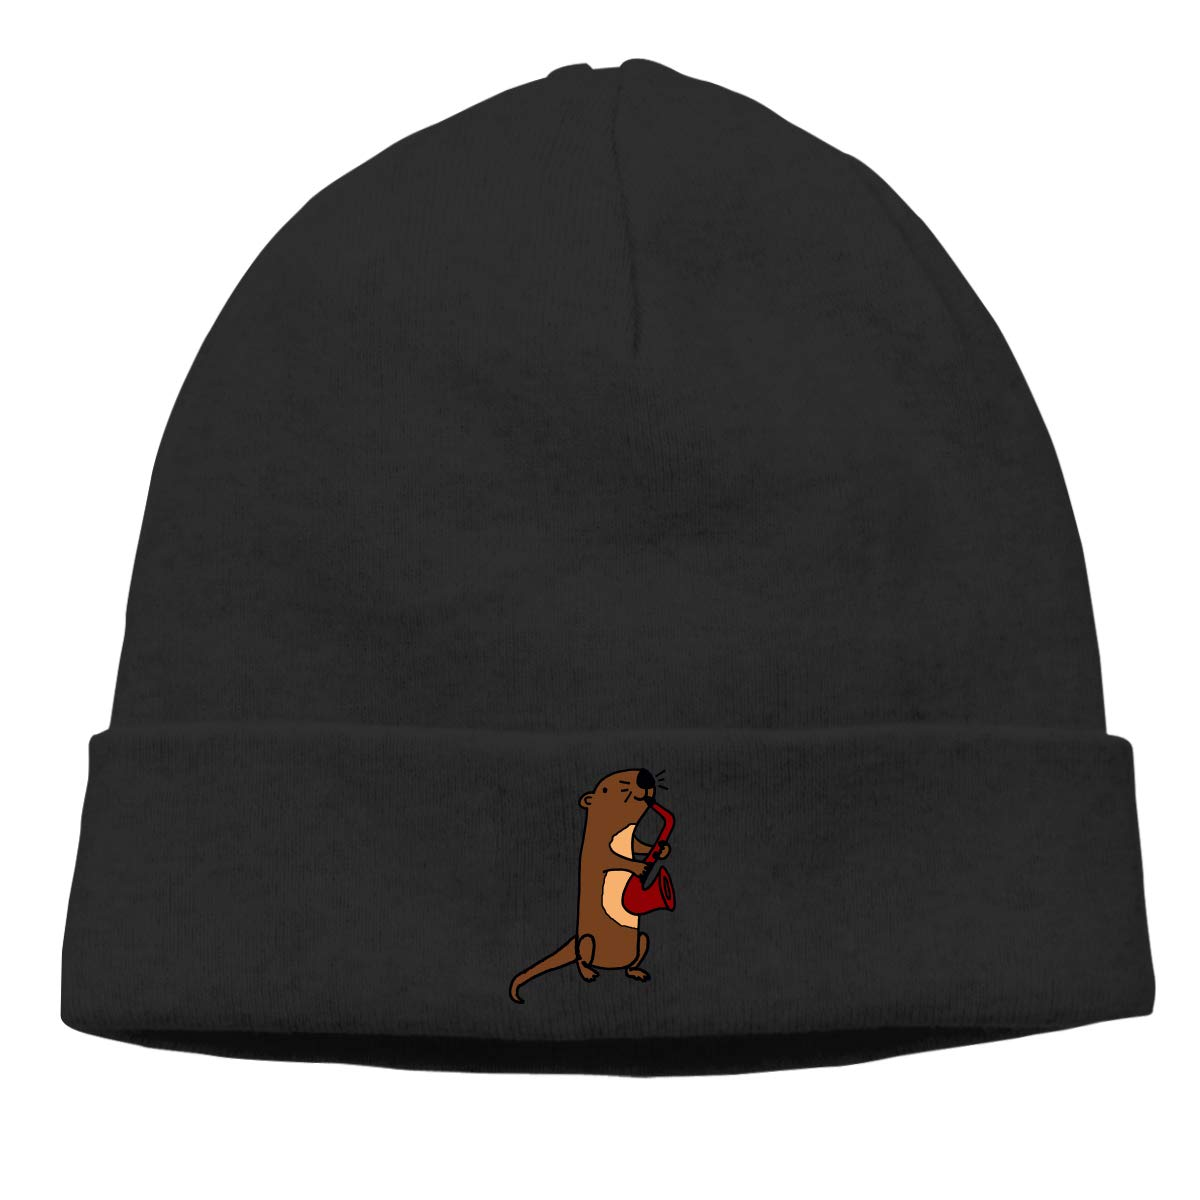 CgyOIUY-lop Beanie Hat Warm Hats Skull Cap Knitted Hat Otter Playing Saxophone